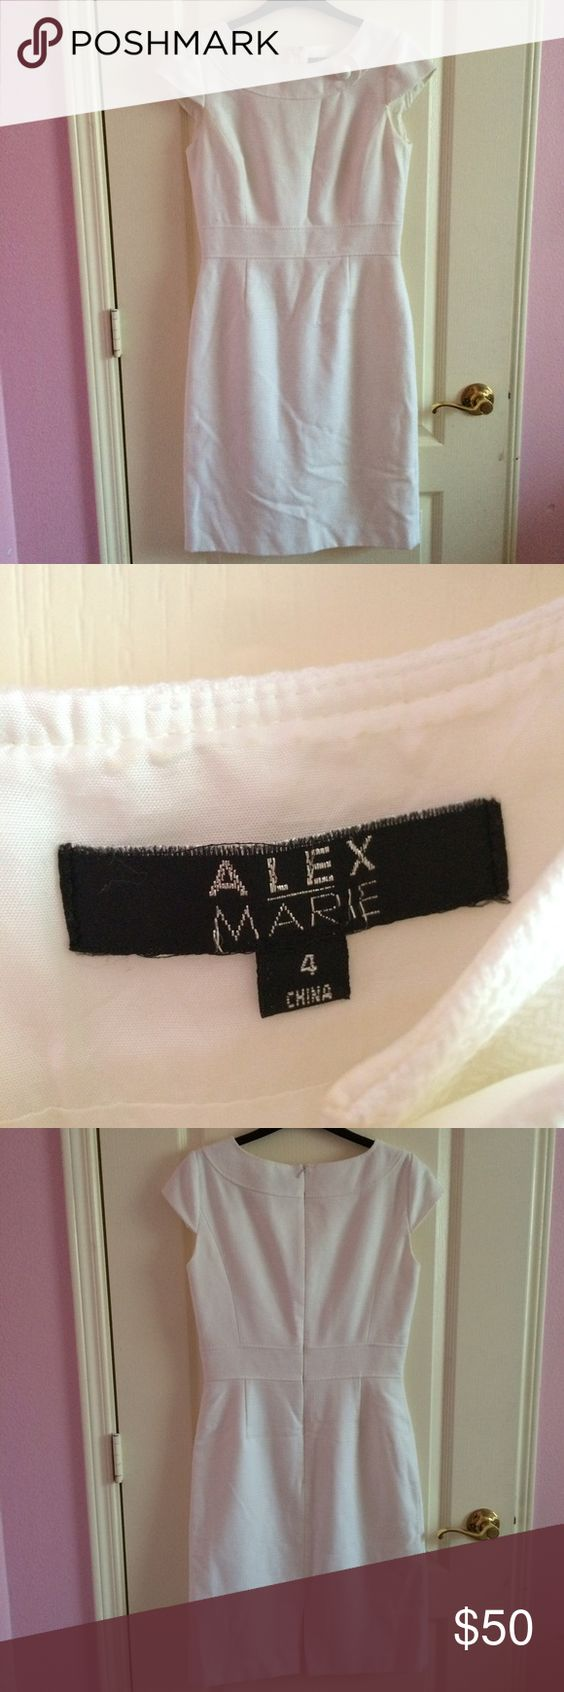 Alex Marie white dress Alex Marie white dress that is heavy, has short sleeves, a button at the top, and a small slit in the back. Size 4. Worn once but doesn't fit and in great condition. All items cheaper on merc. Alex Marie Dresses Midi